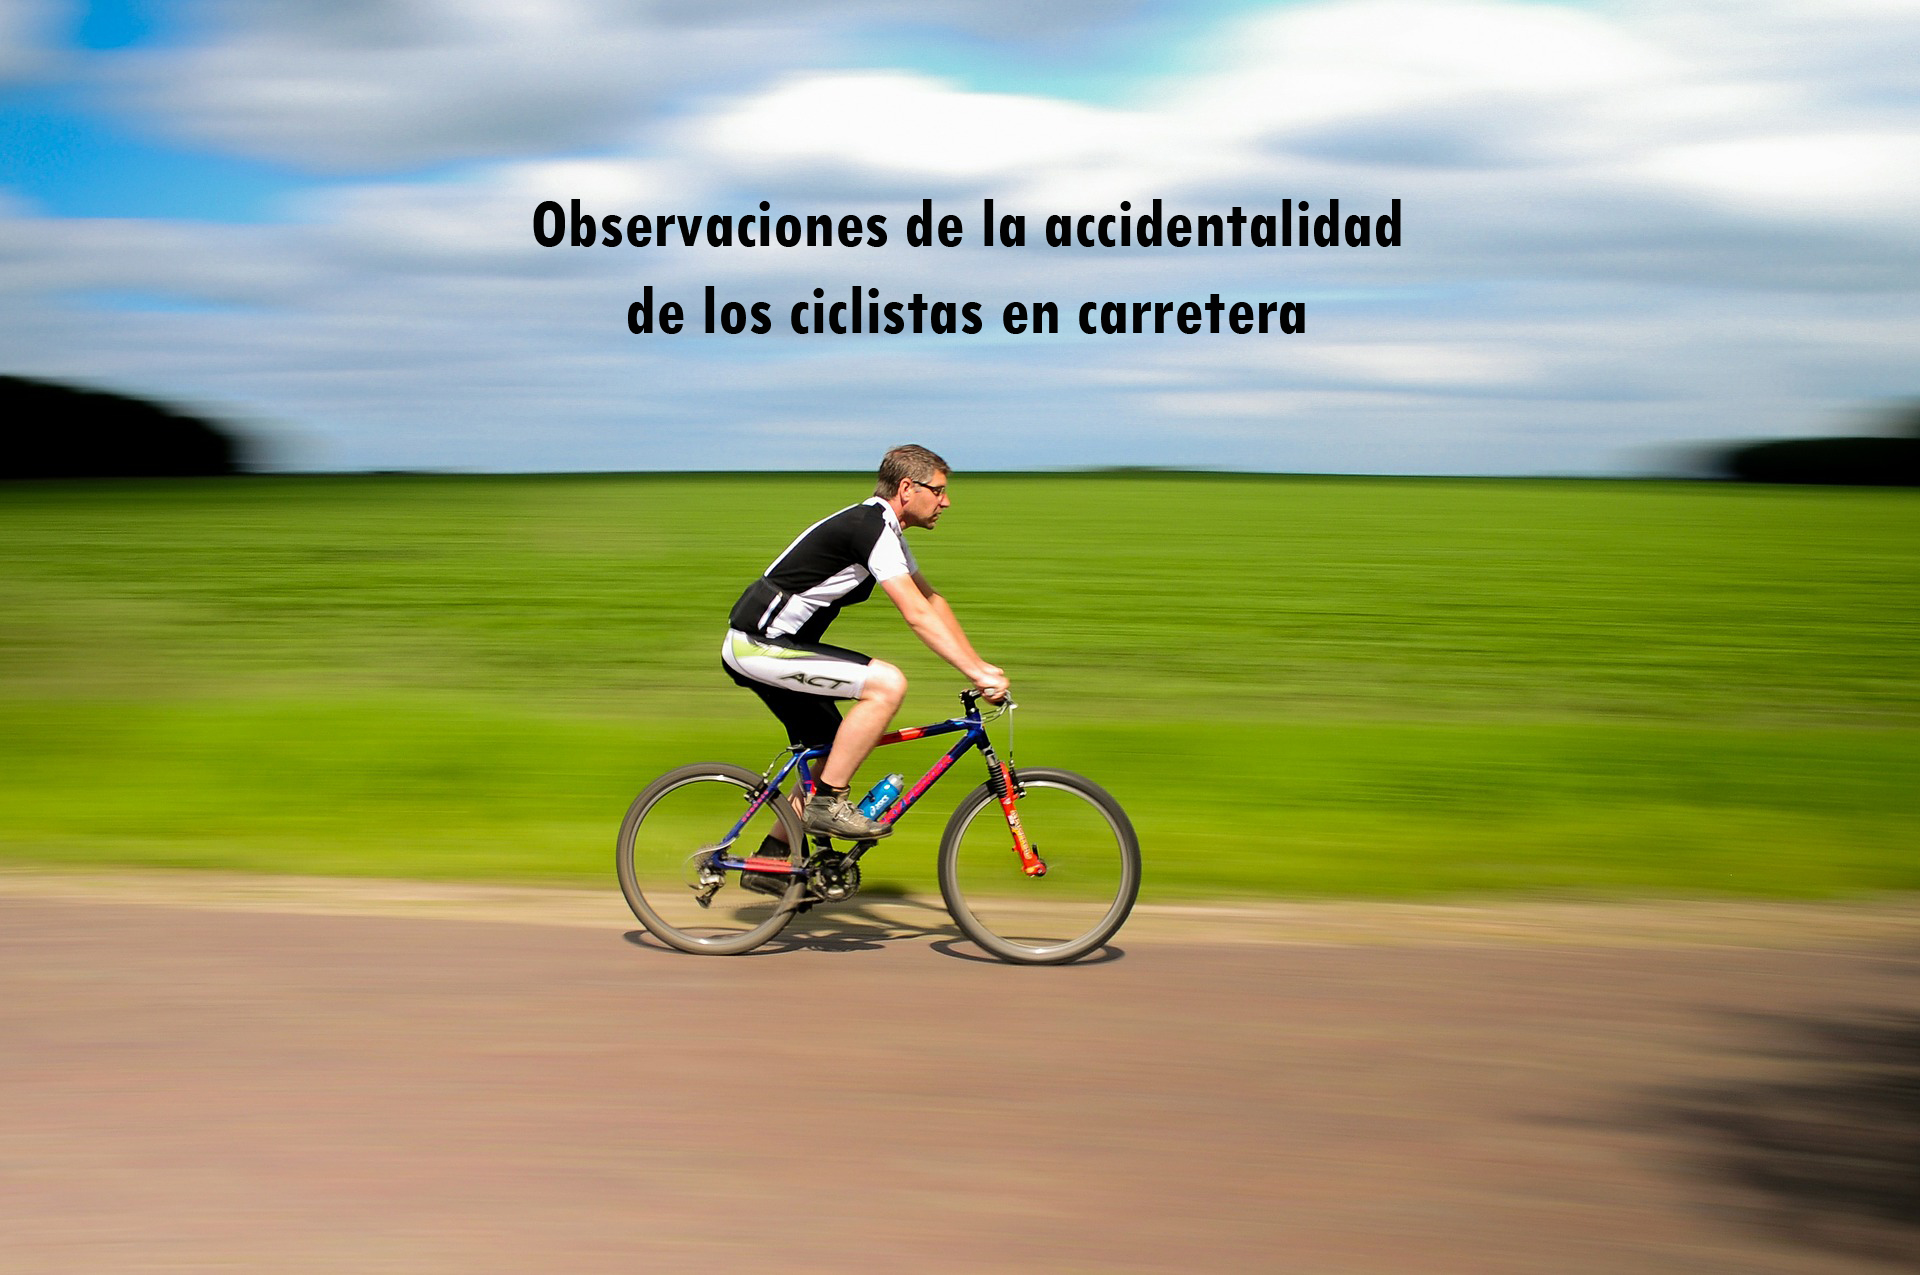 accidentalidad ciclistas